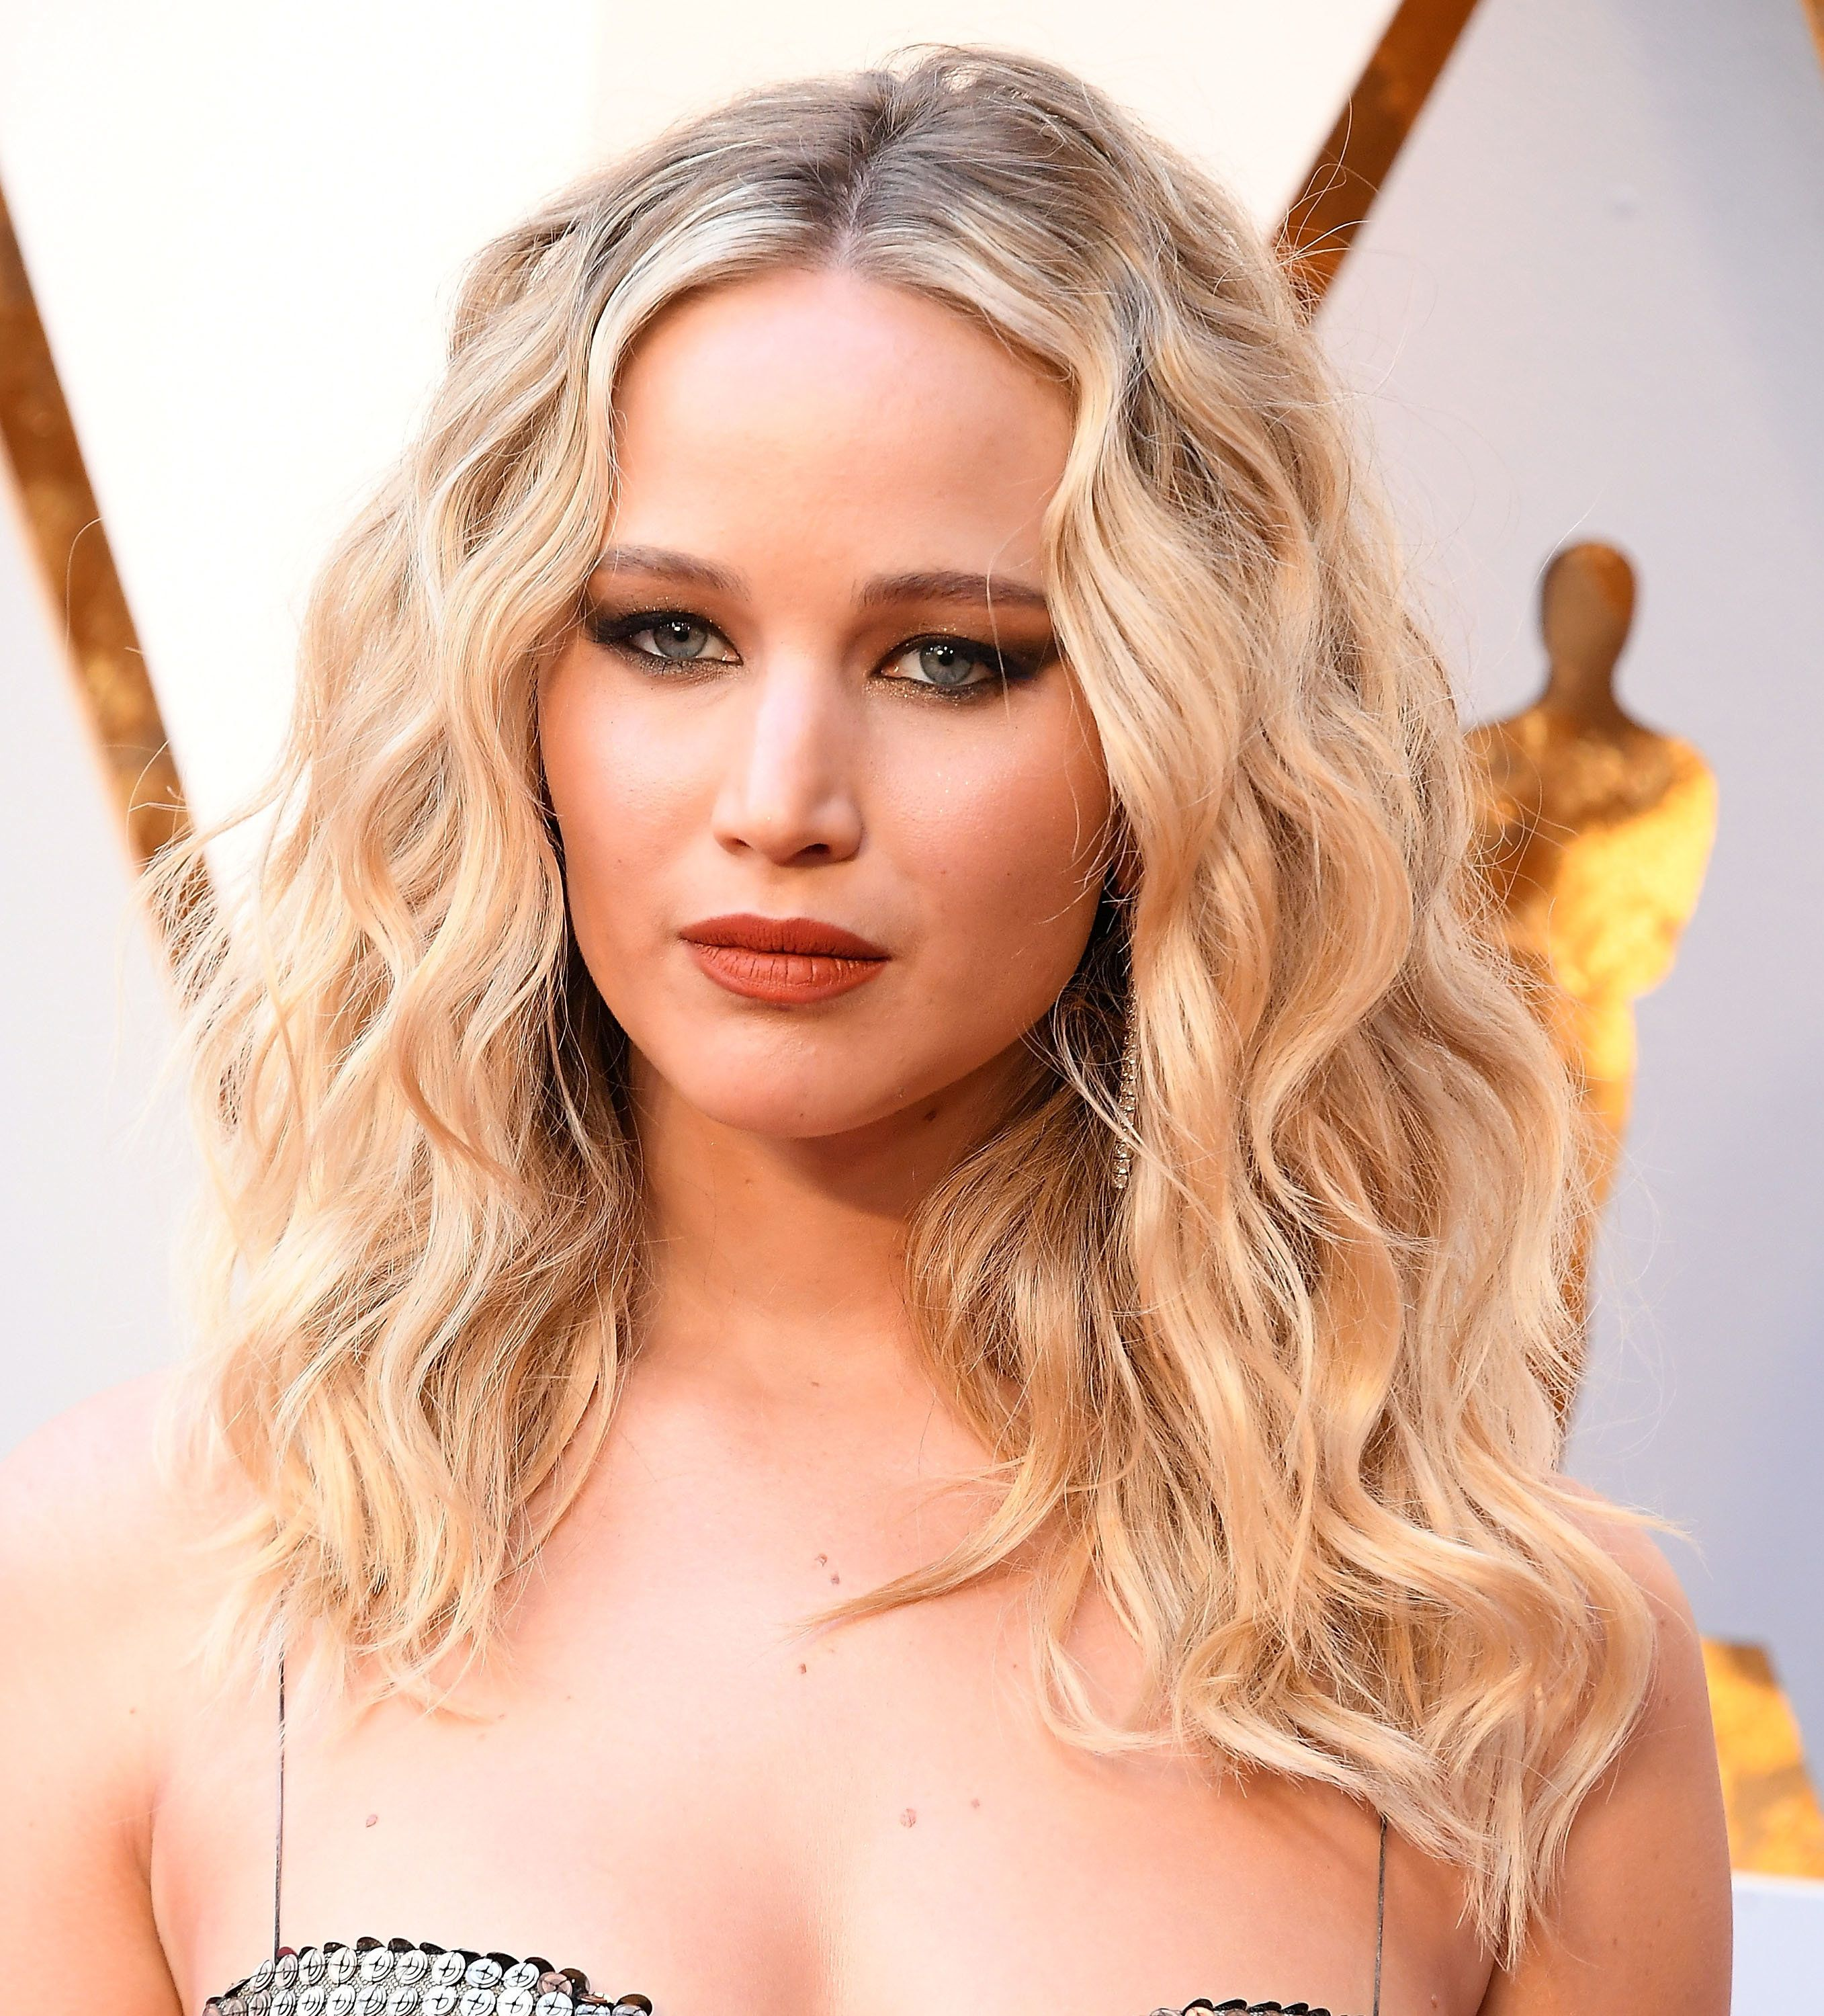 Jennifer Lawrence Nude Photos Hacker Sentenced To 8 Months In Prison